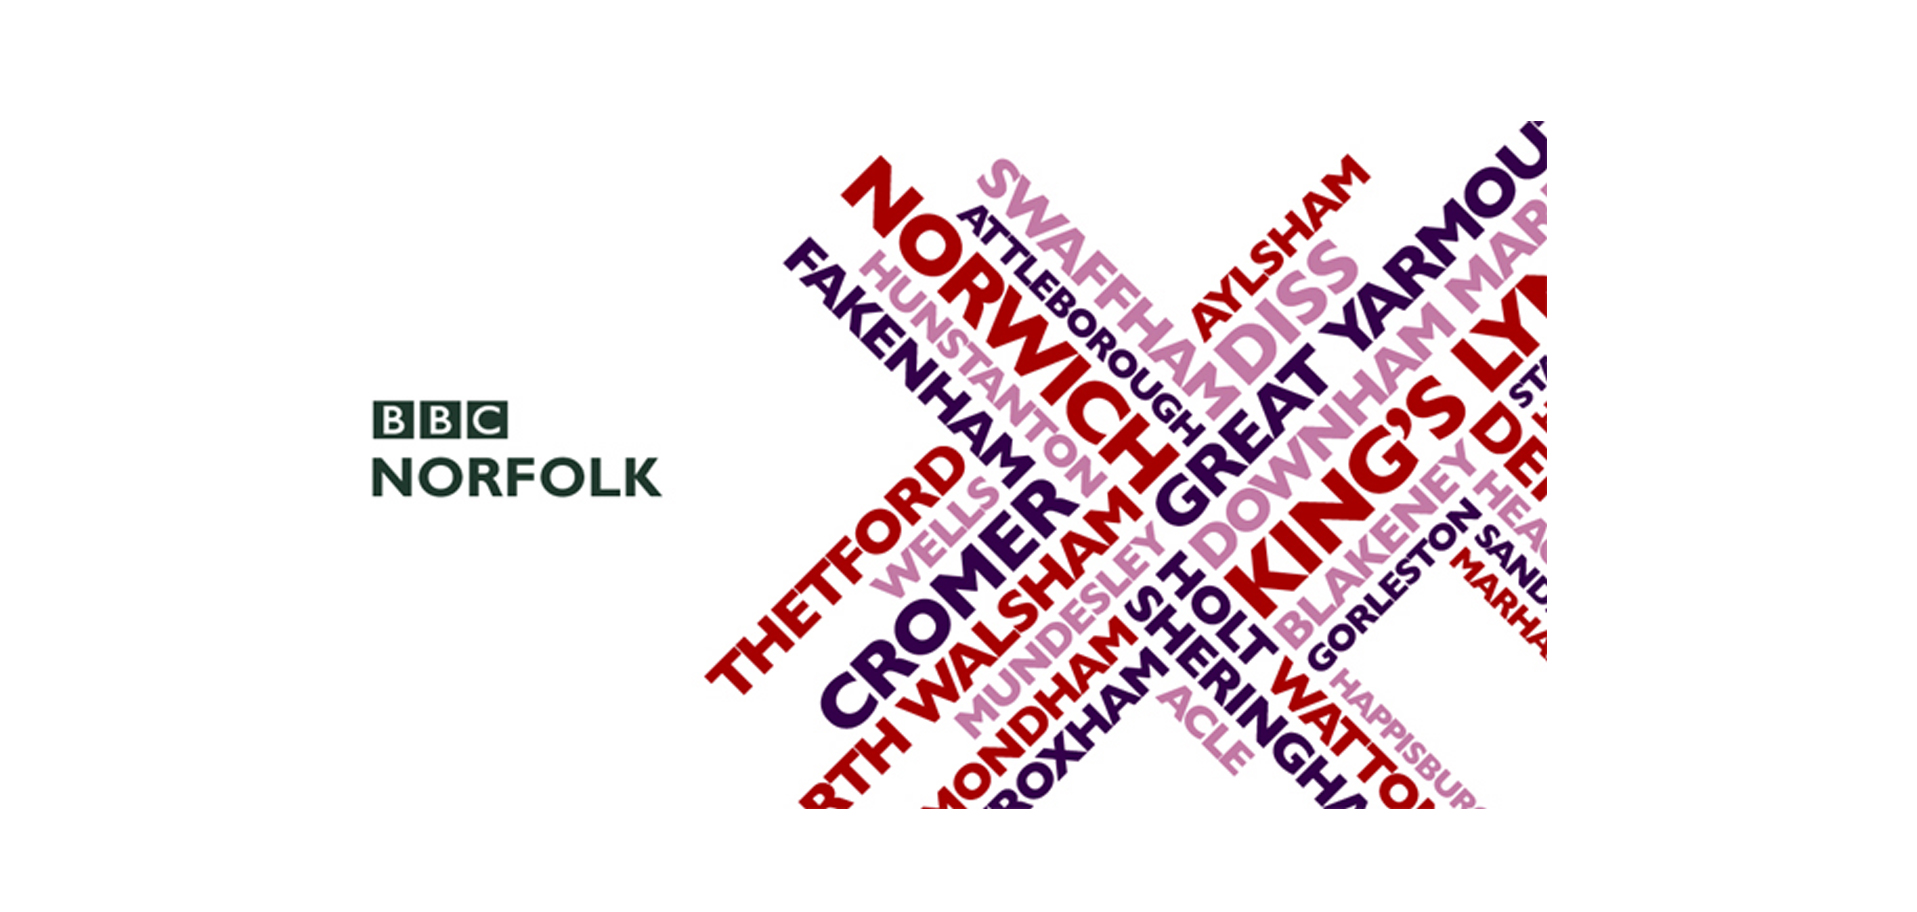 BBC-radio-norfolk